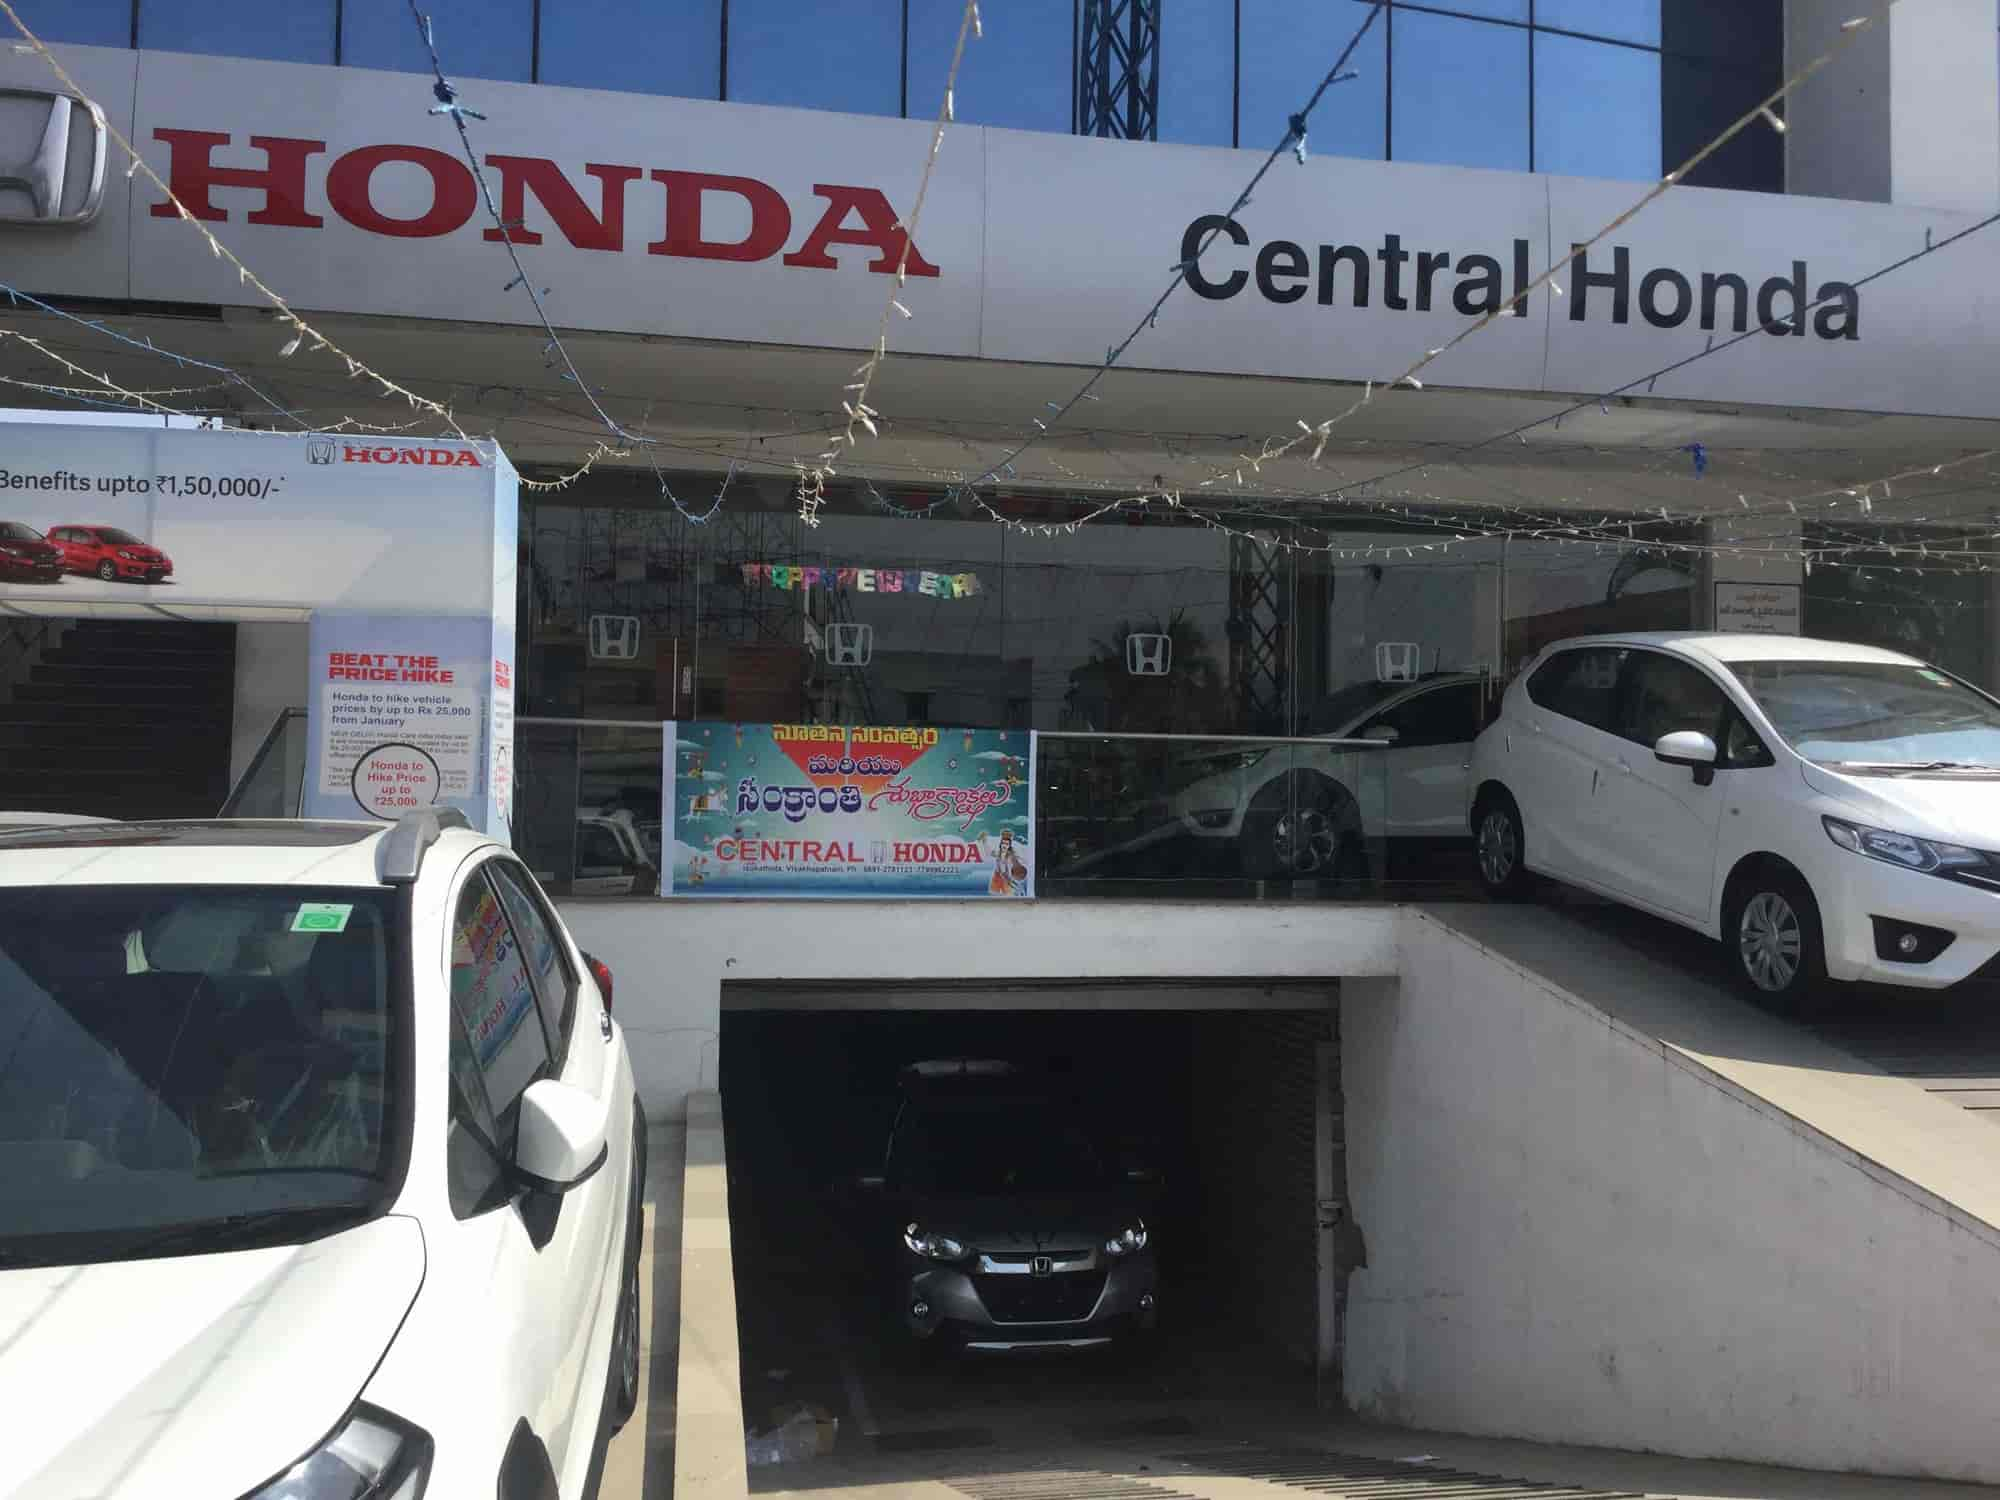 Central Honda Mvp Colony Car Dealers In Visakhapatnam Justdial